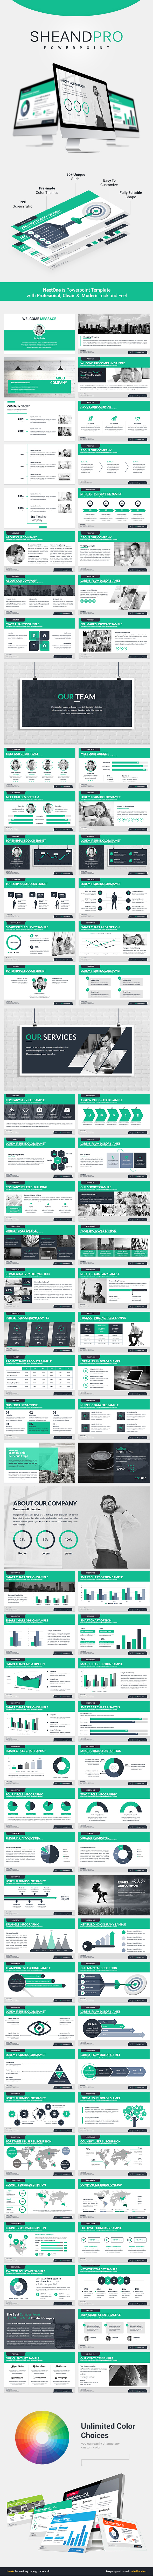 Sheandpro Powerpoint Template - Business PowerPoint Templates